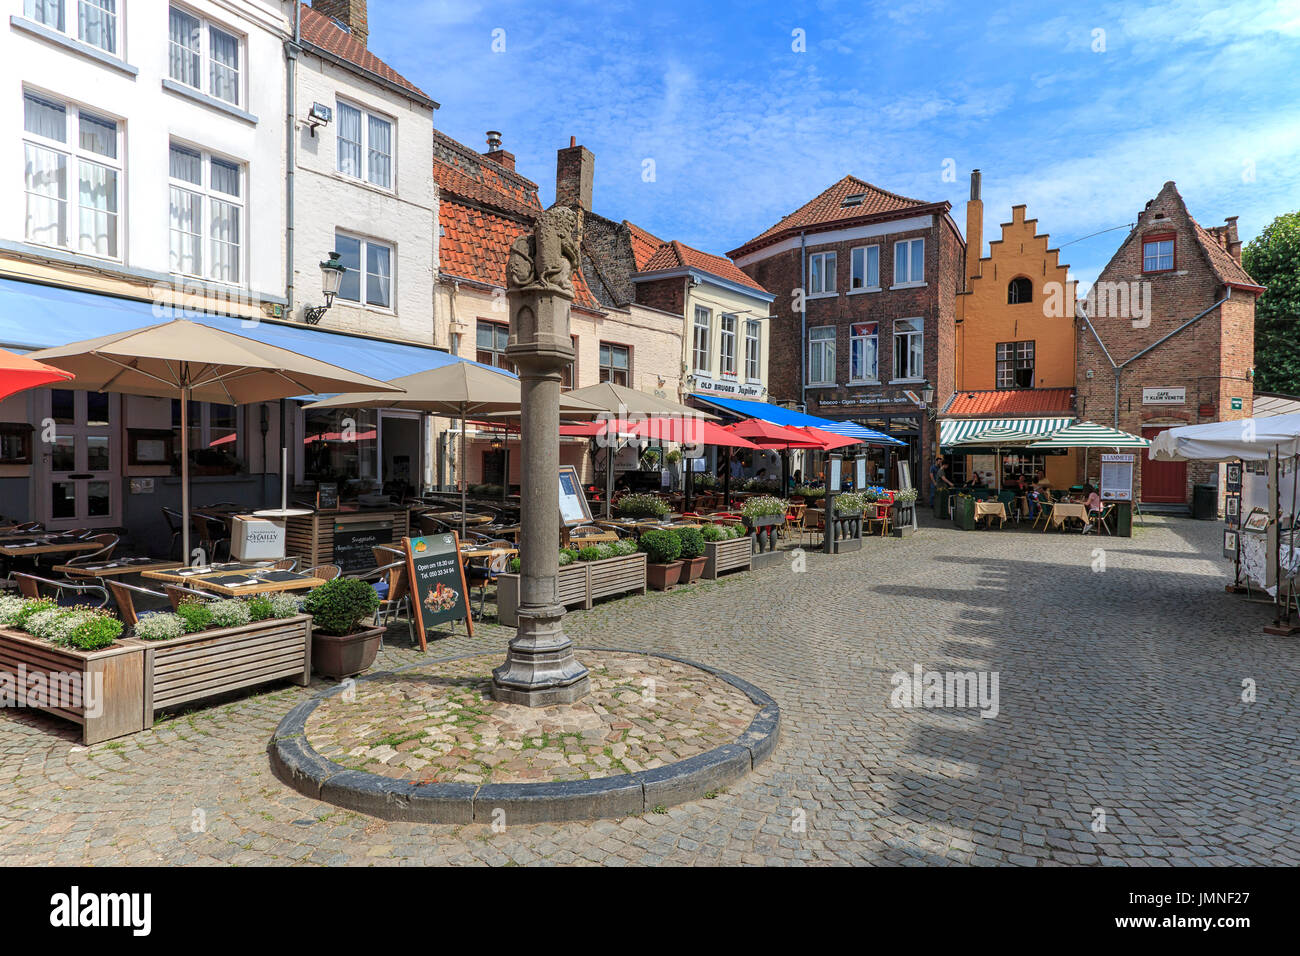 Bruges, Belgium - July 7, 2017: Tourists eating mussels and french fries in the restaurants not far from the Market Square of Bruges - Stock Image